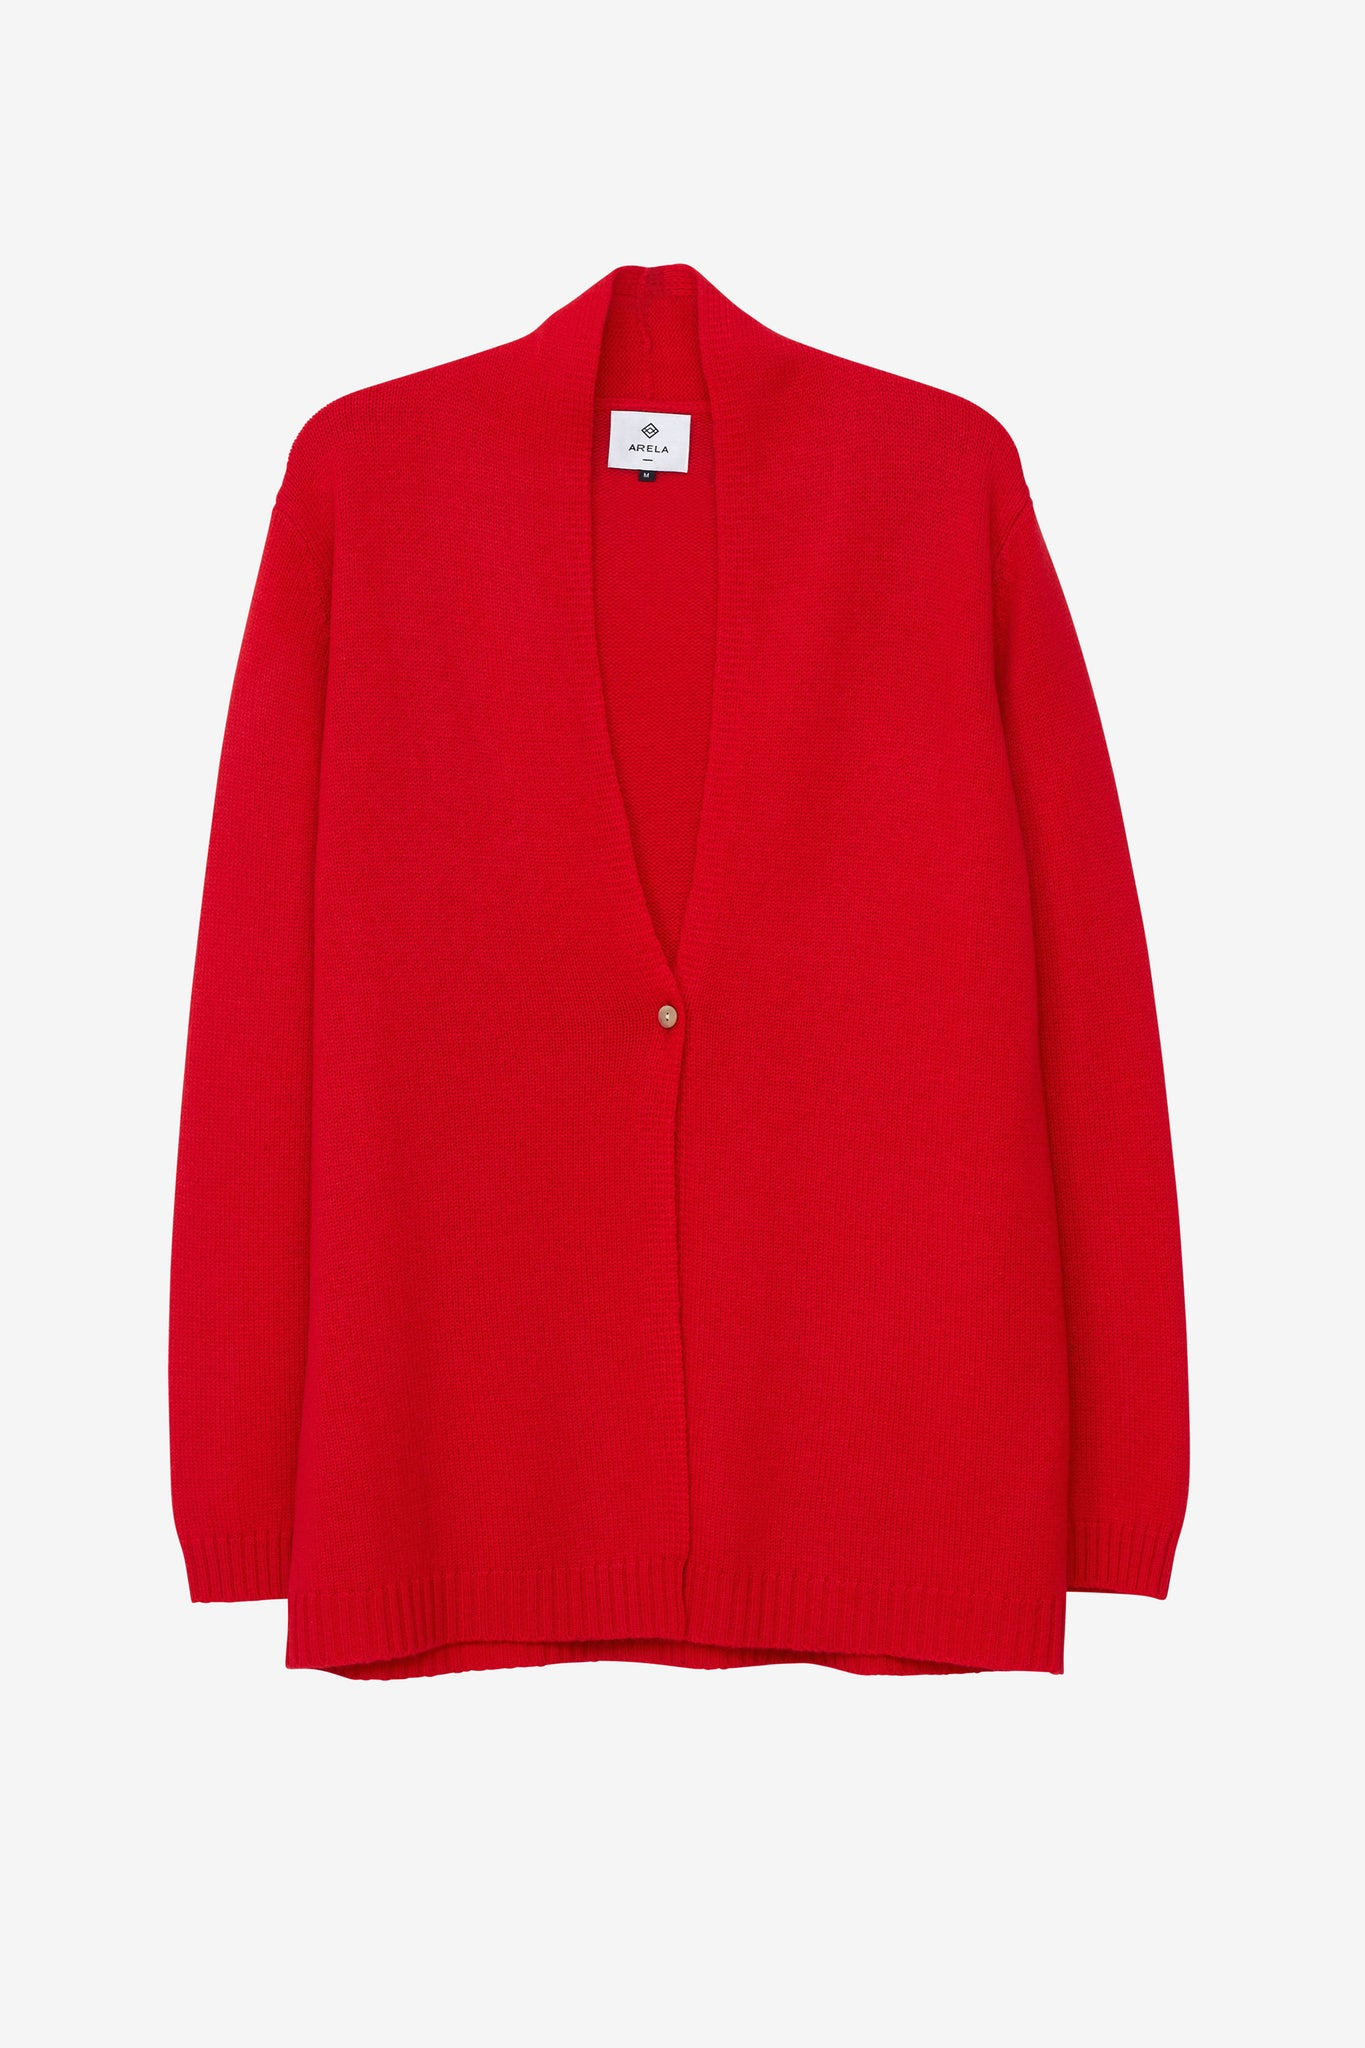 Suzann cardigan in red